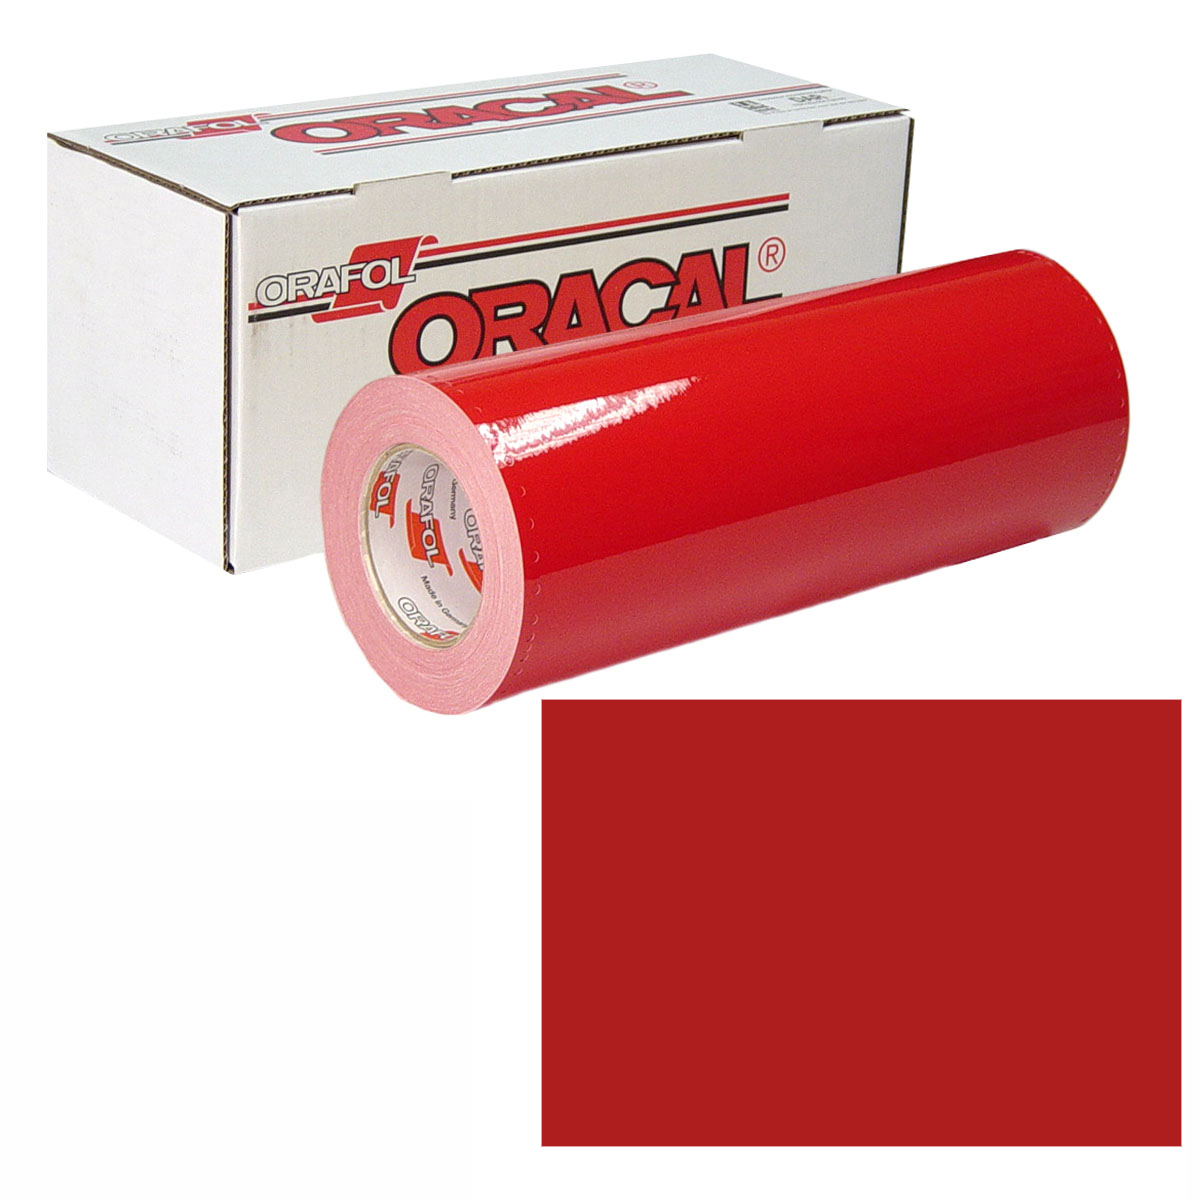 ORACAL 951 15In X 50Yd 031 Red